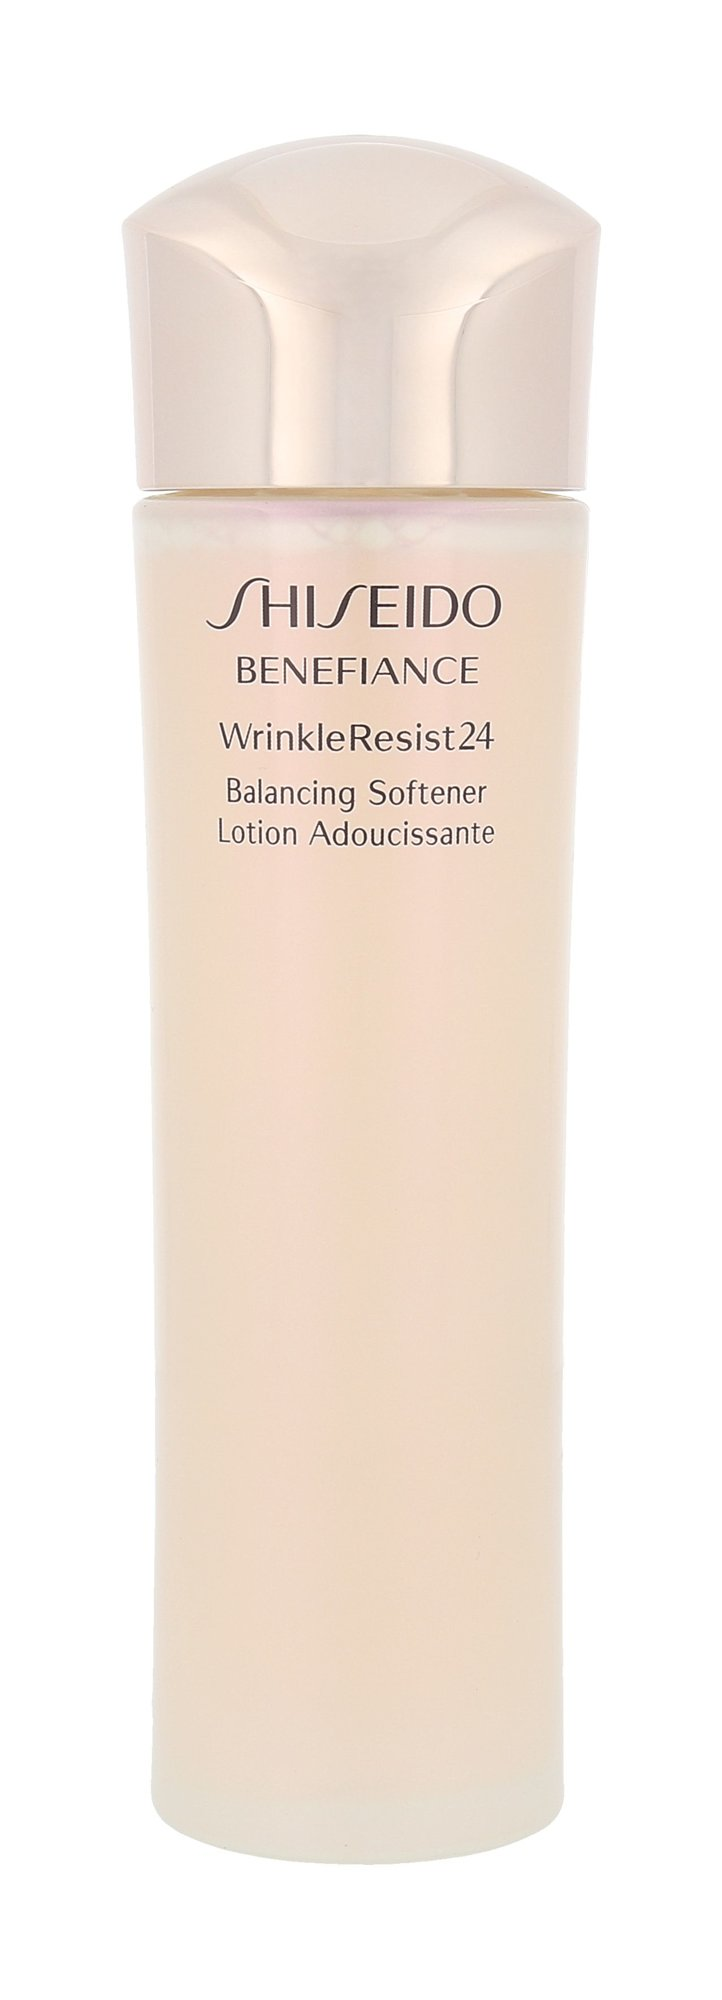 Shiseido Benefiance Wrinkle Resist 24 Cosmetic 150ml